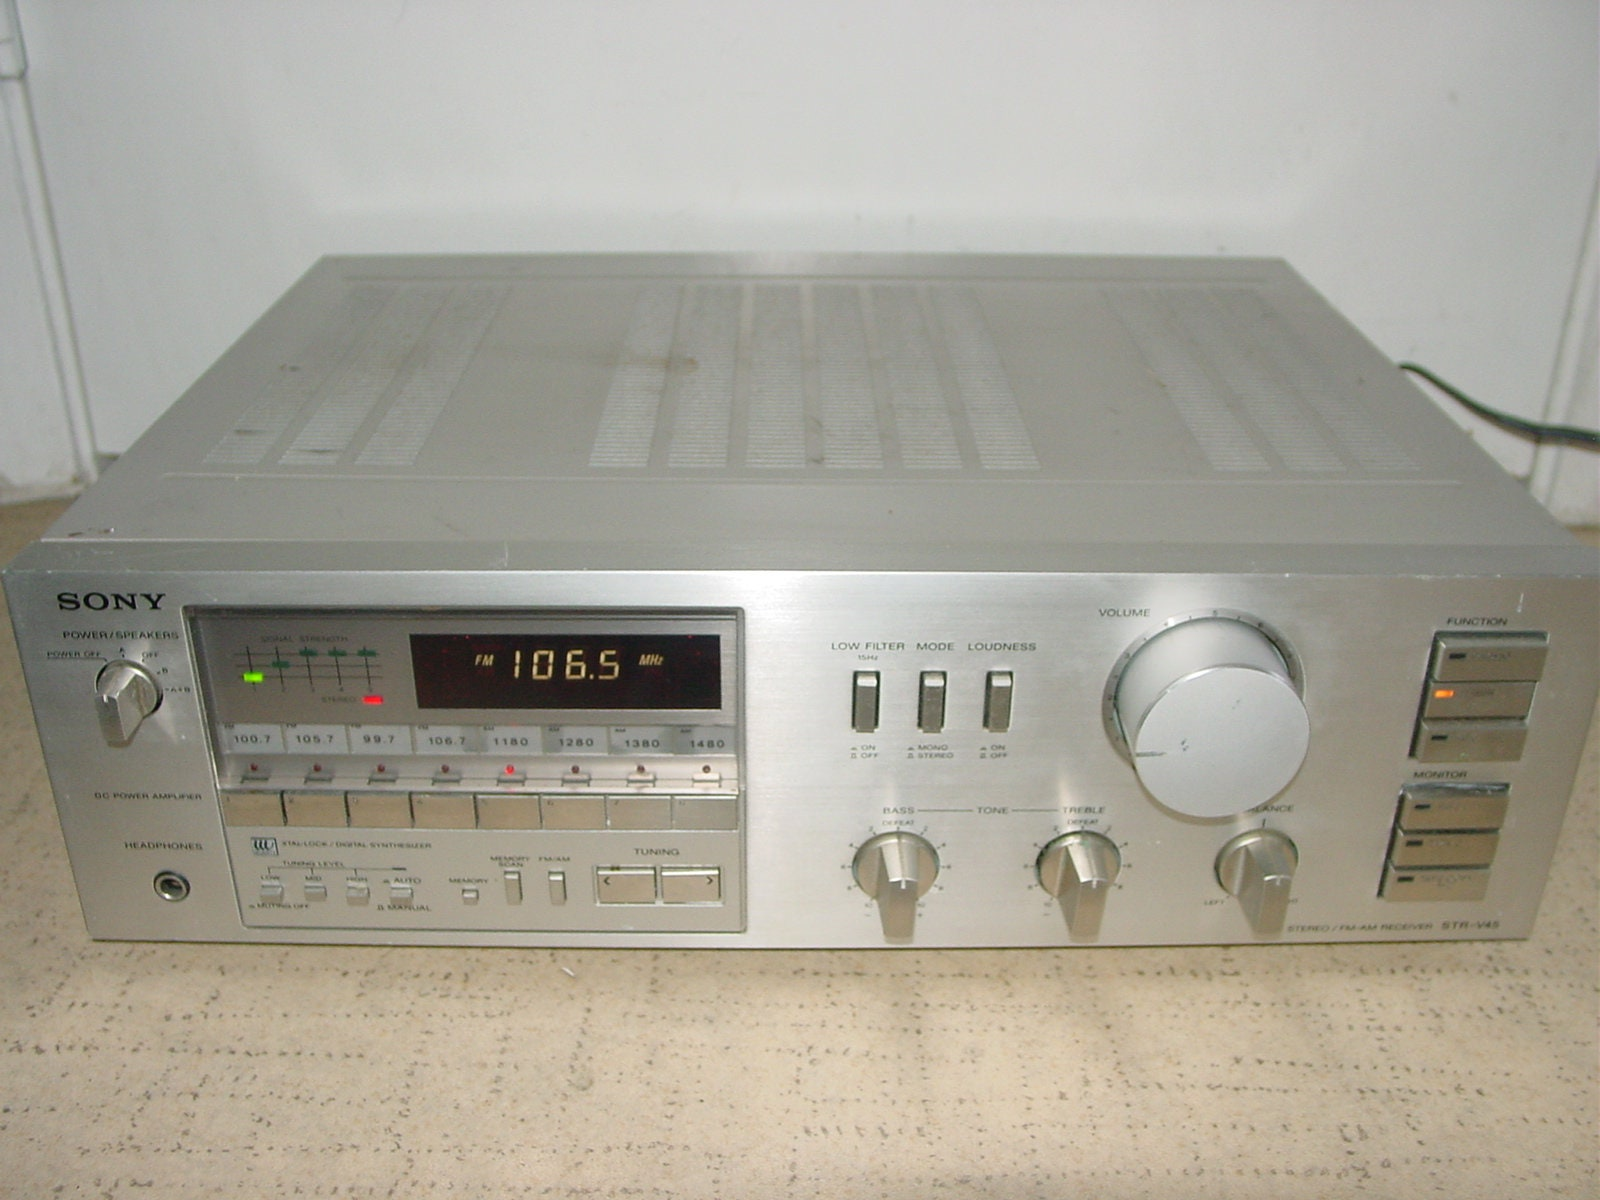 Sony STR-V45 Xtar-Lock Digital AM/FM Stereo Receiver Vintage Audio Japan